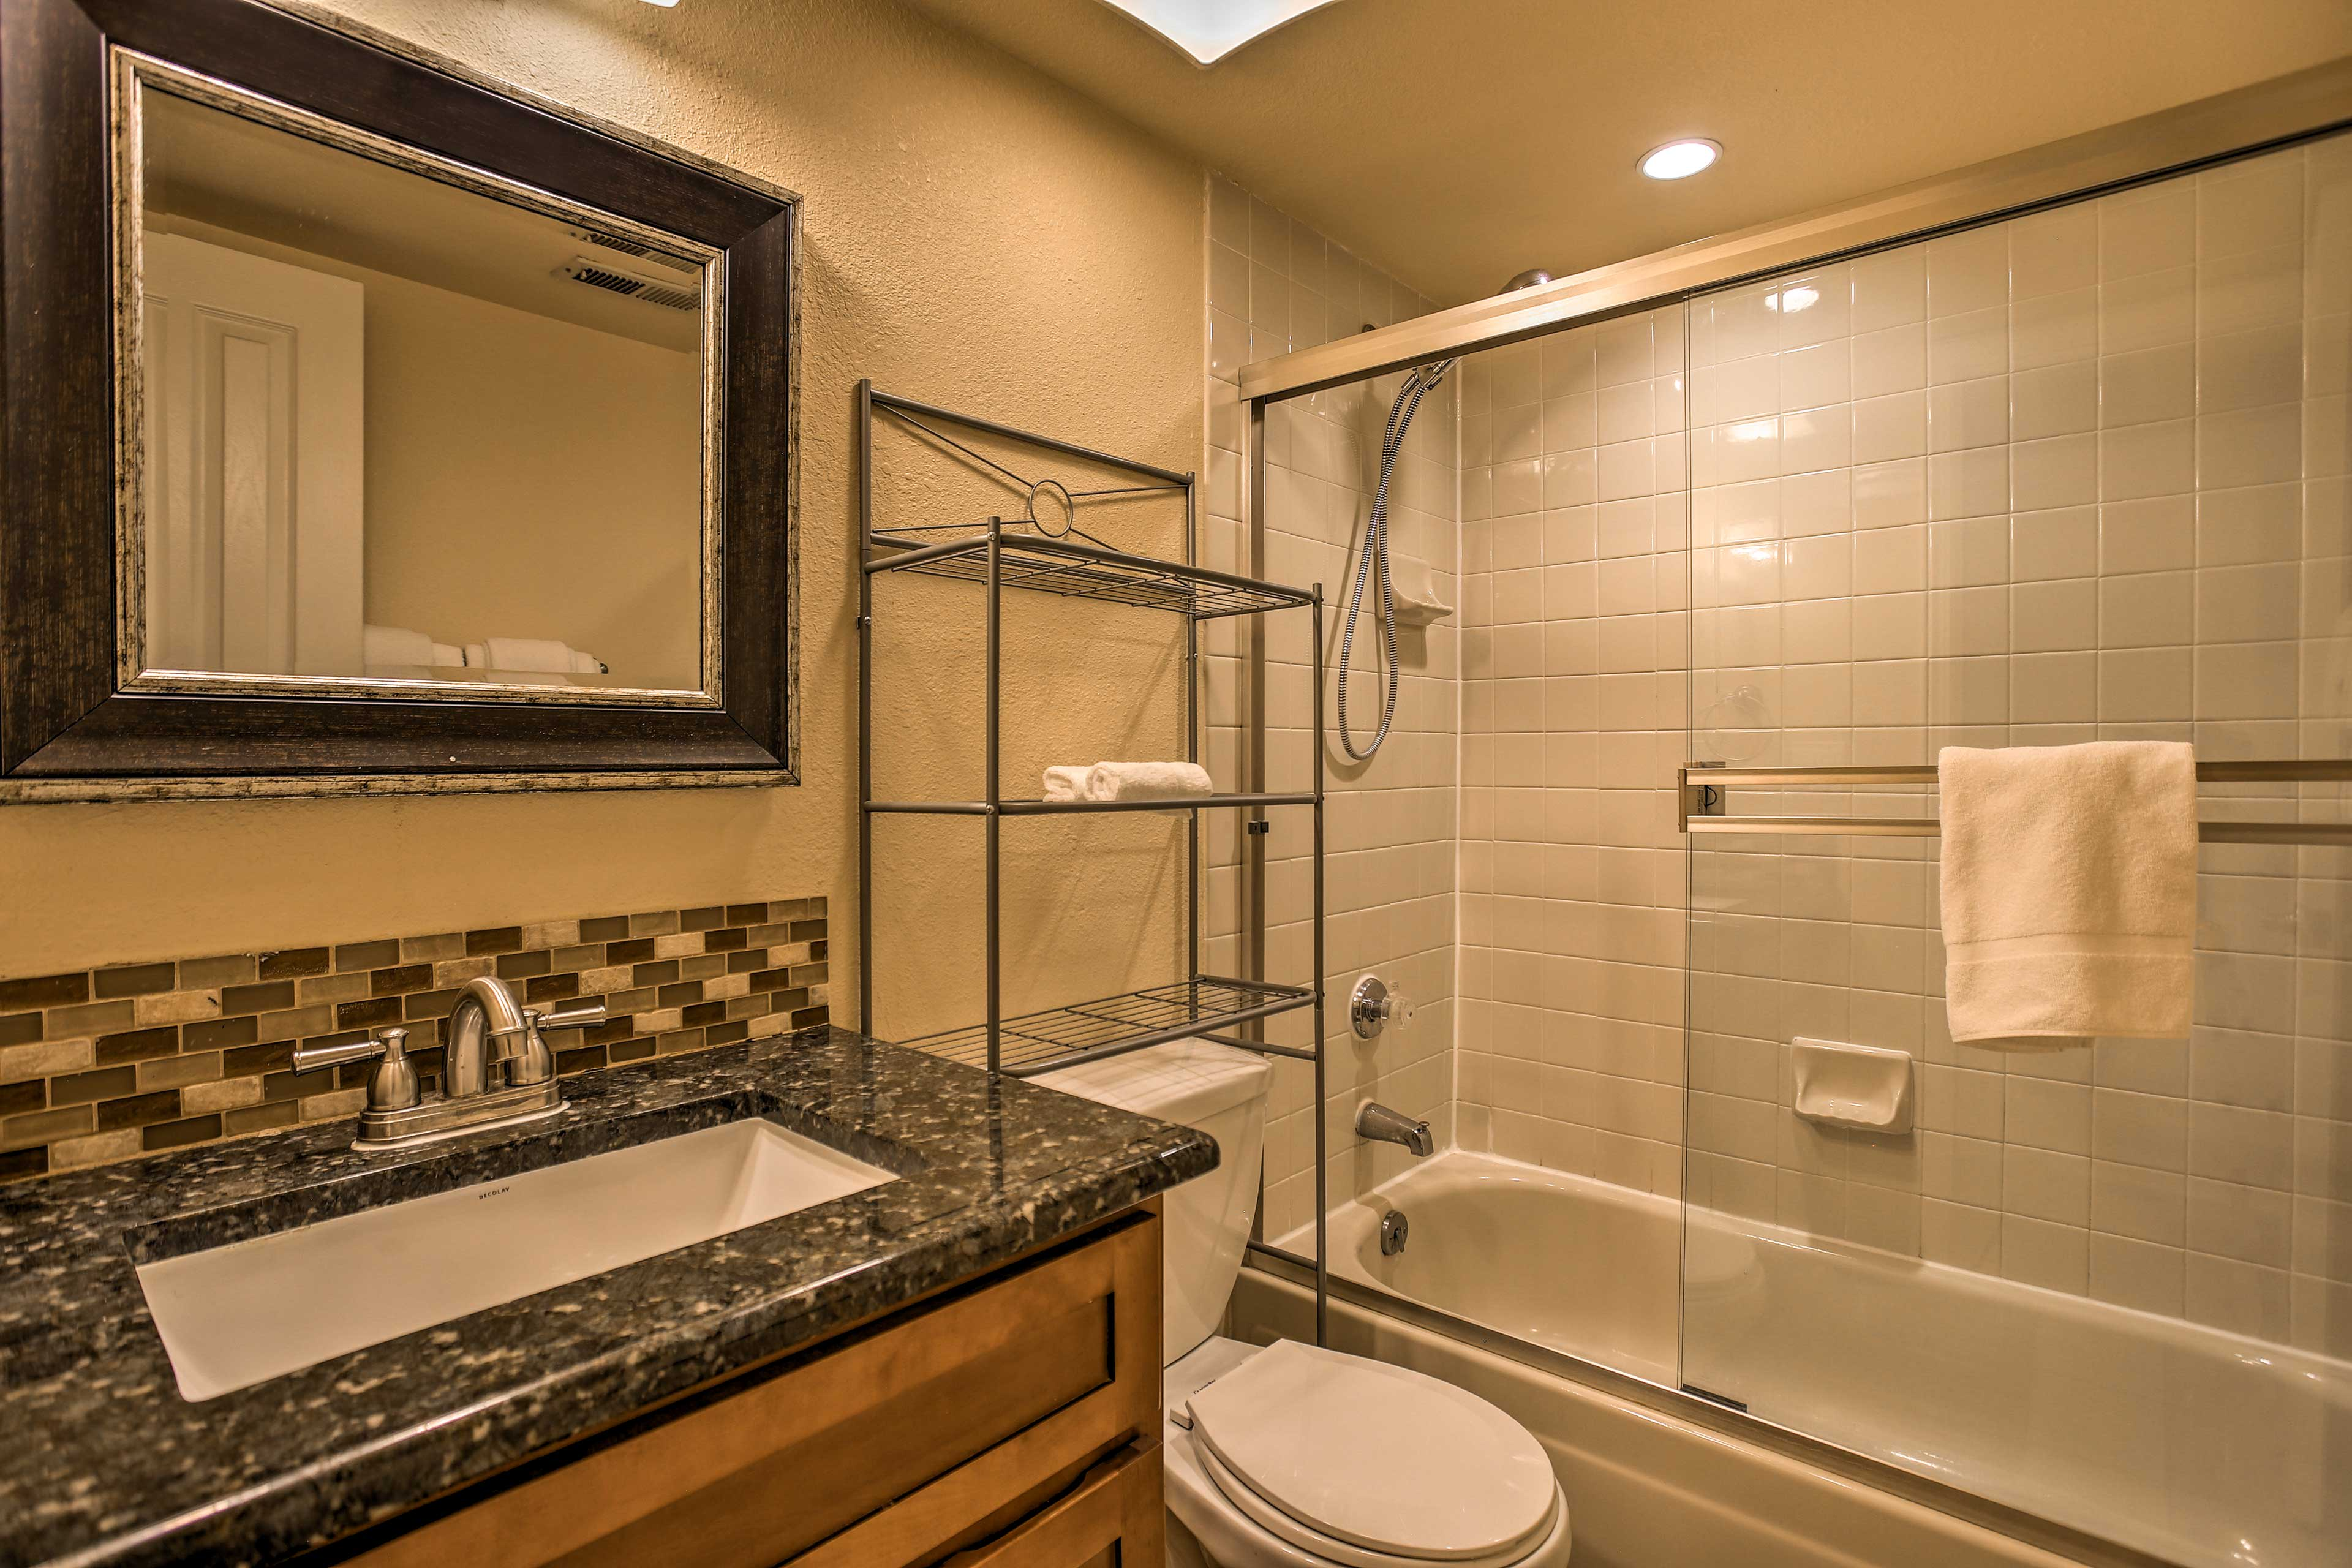 The first bathroom is equipped with a shower/tub combo.